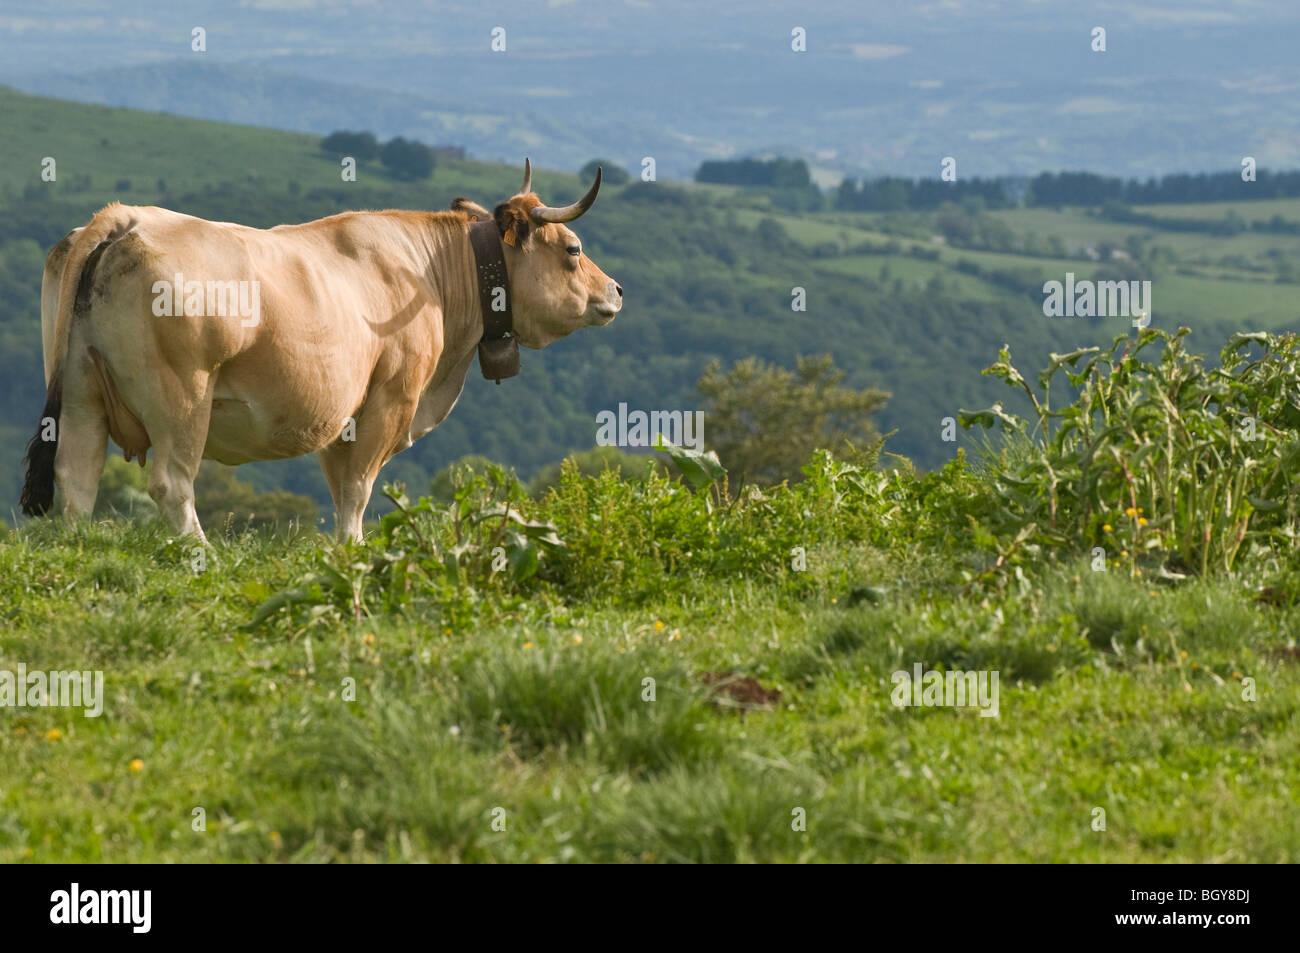 An Aubrac cow, wearing a traditional bell necklace, contemplates the immense wild landscape of Aubrac, France - Stock Image